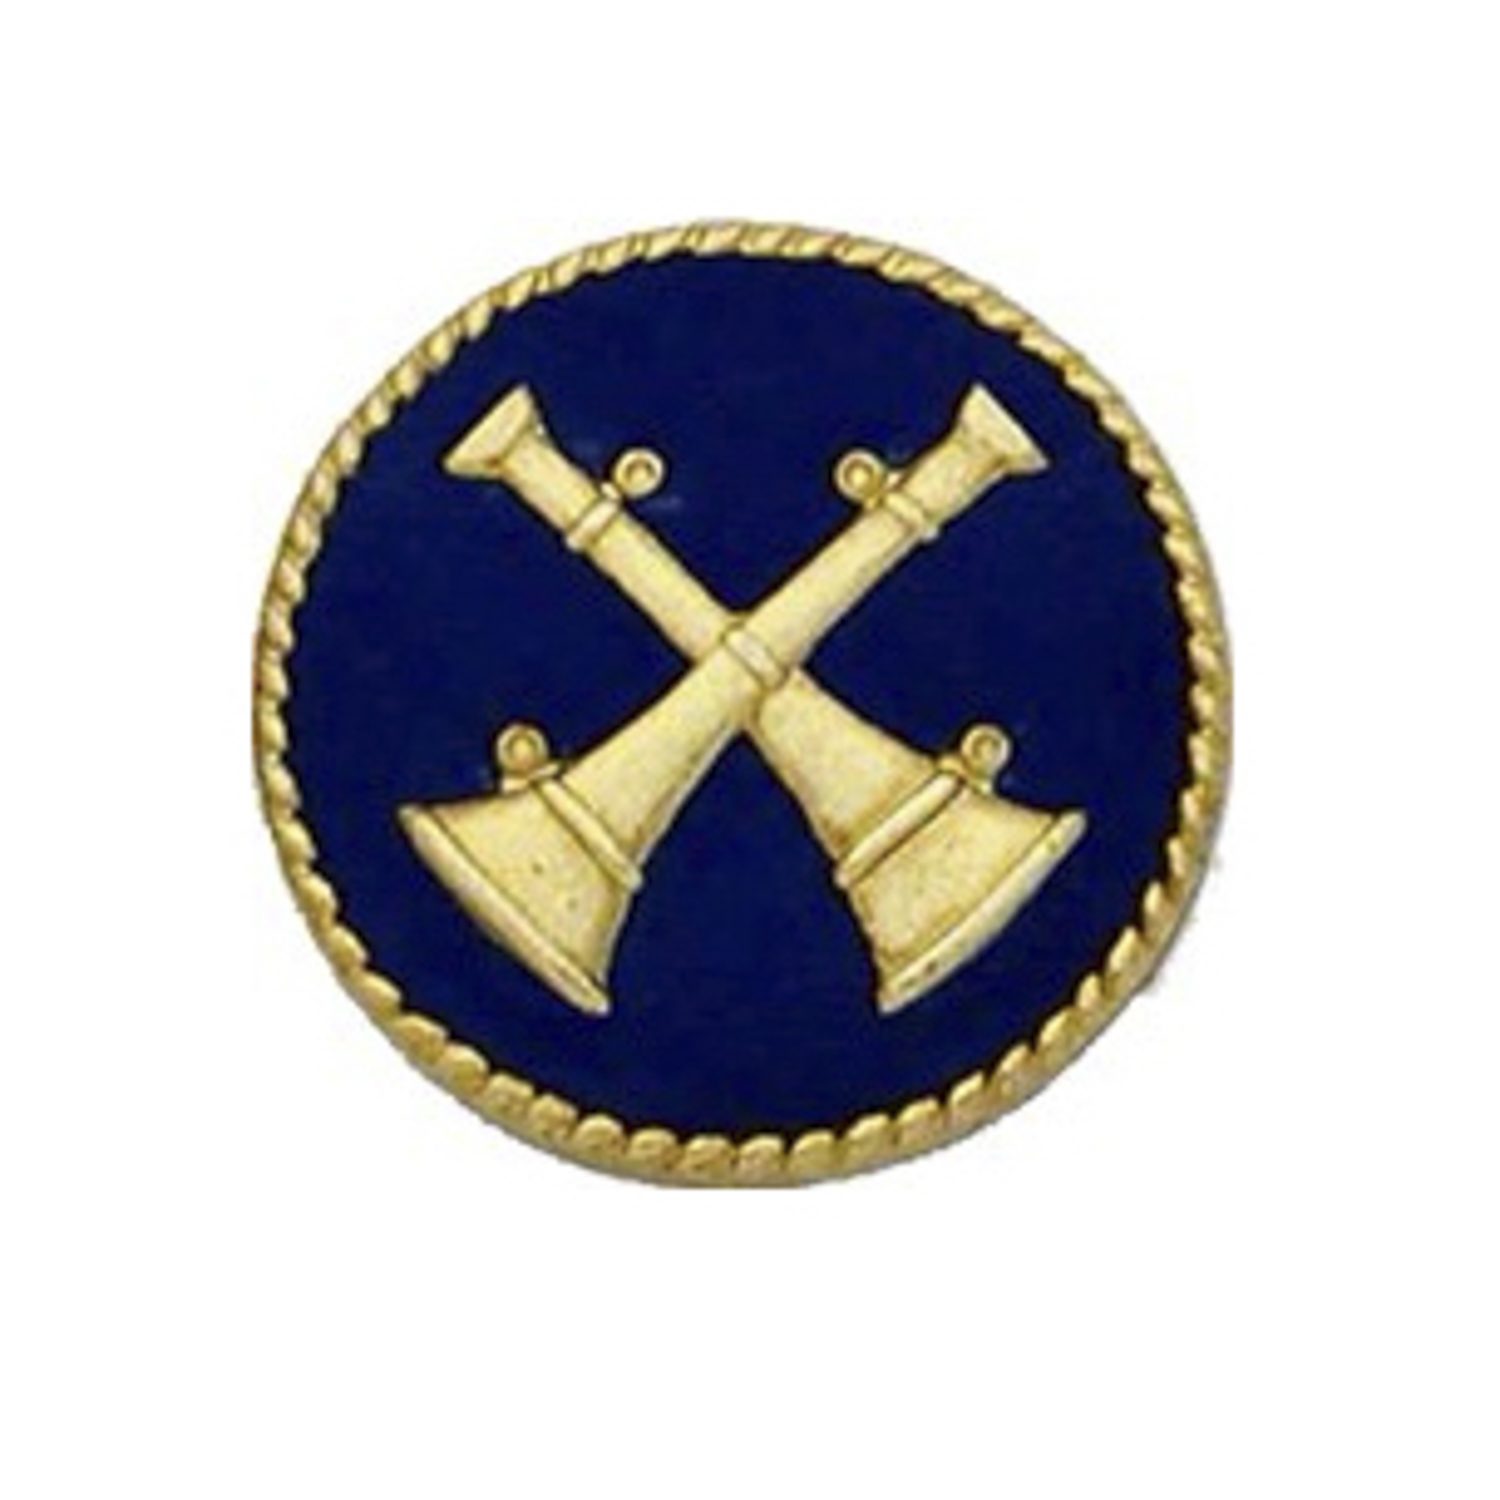 Smith & Warren Collar Insignia